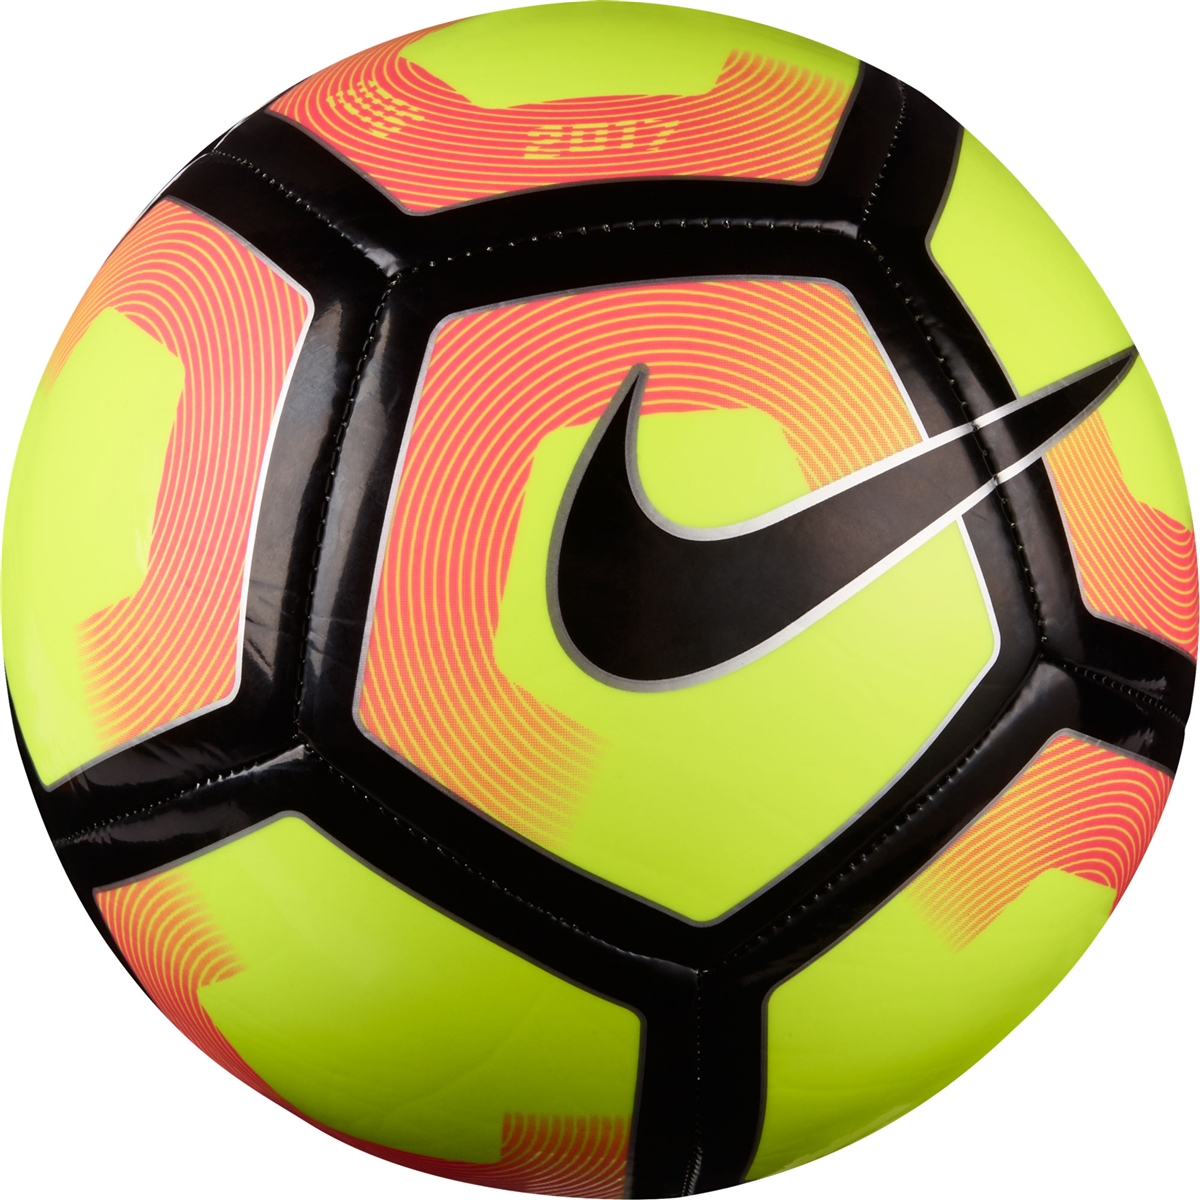 Nike Pitch Soccer Ball (Volt Pink Blast Black)  43456745a